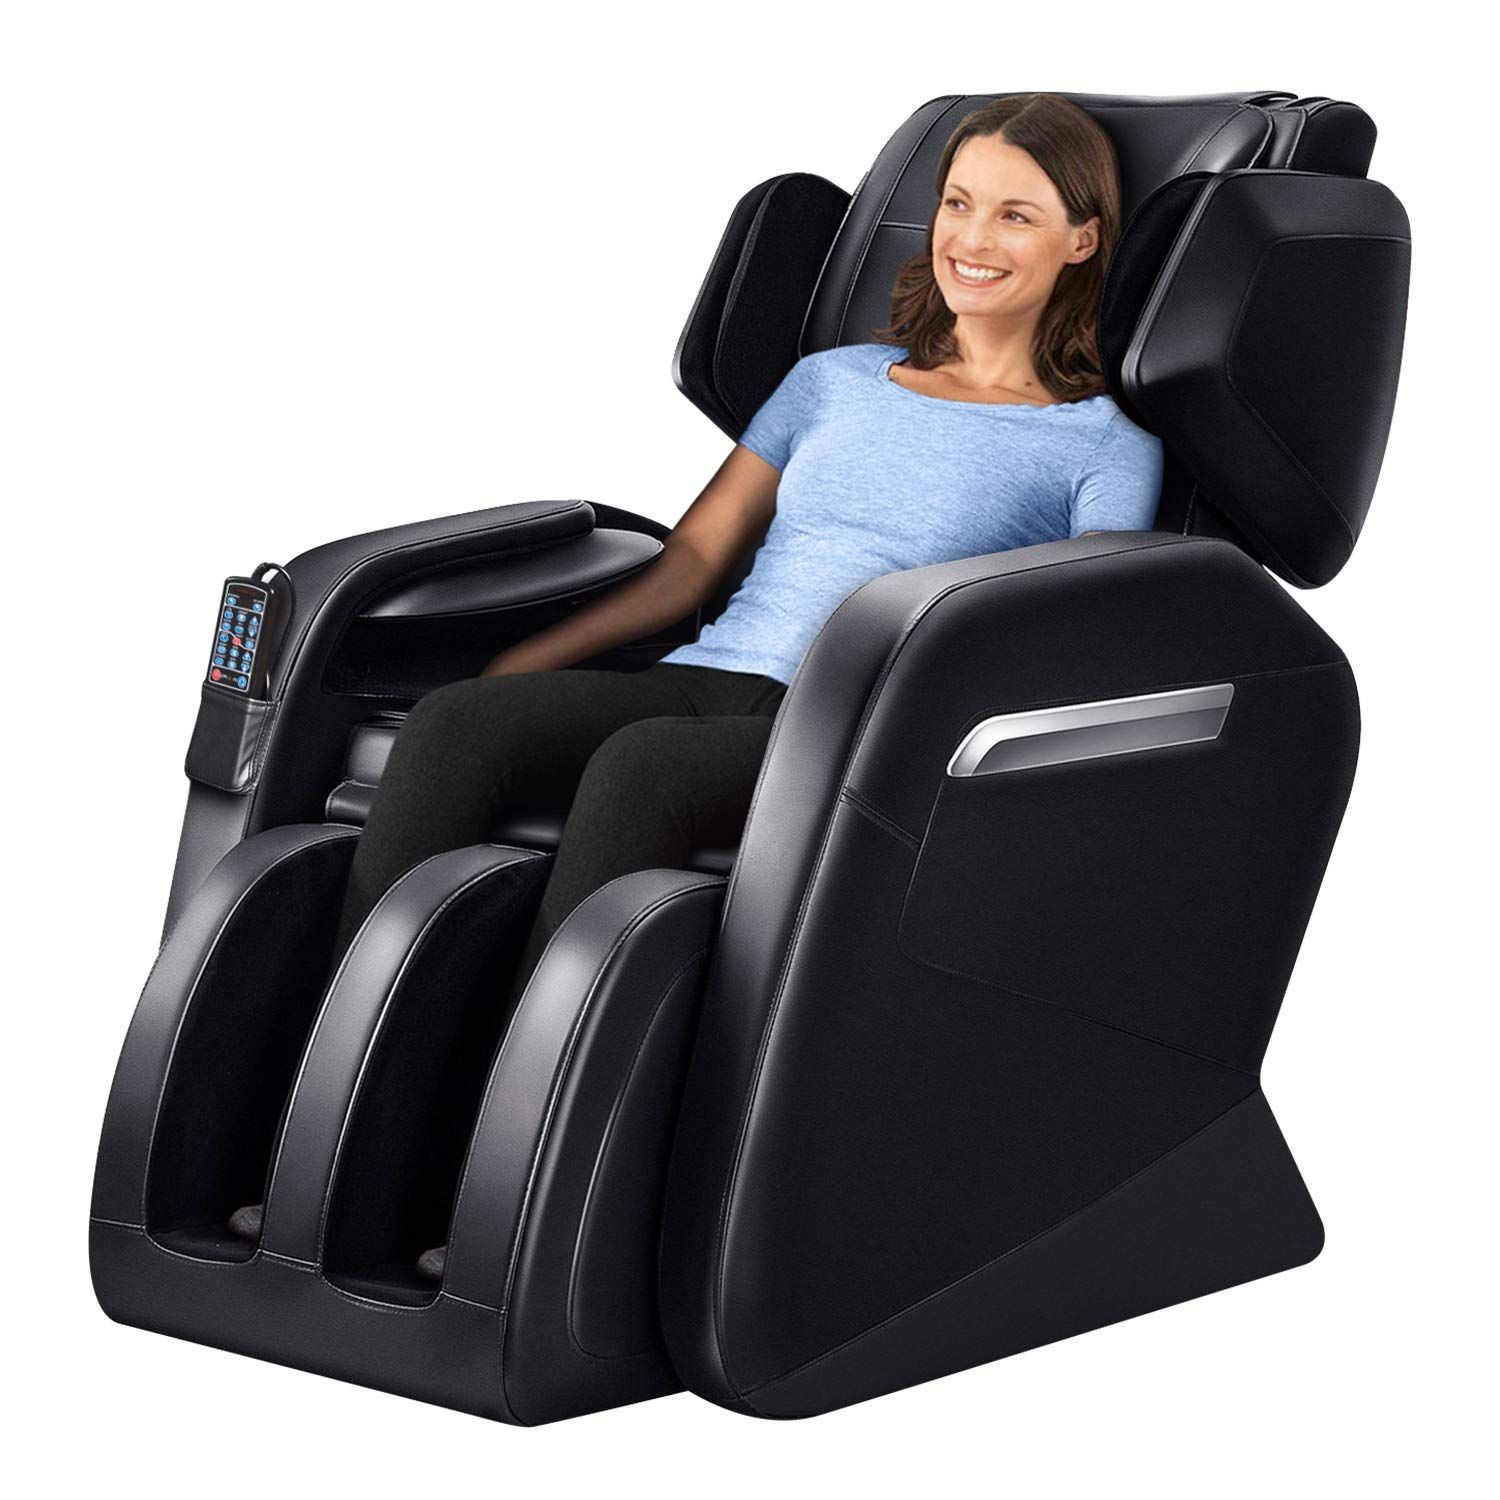 Top 10 Best Full Body Massage Chair Reviews In 2019 Massage Chair Full Body Massage Shiatsu Massage Chair